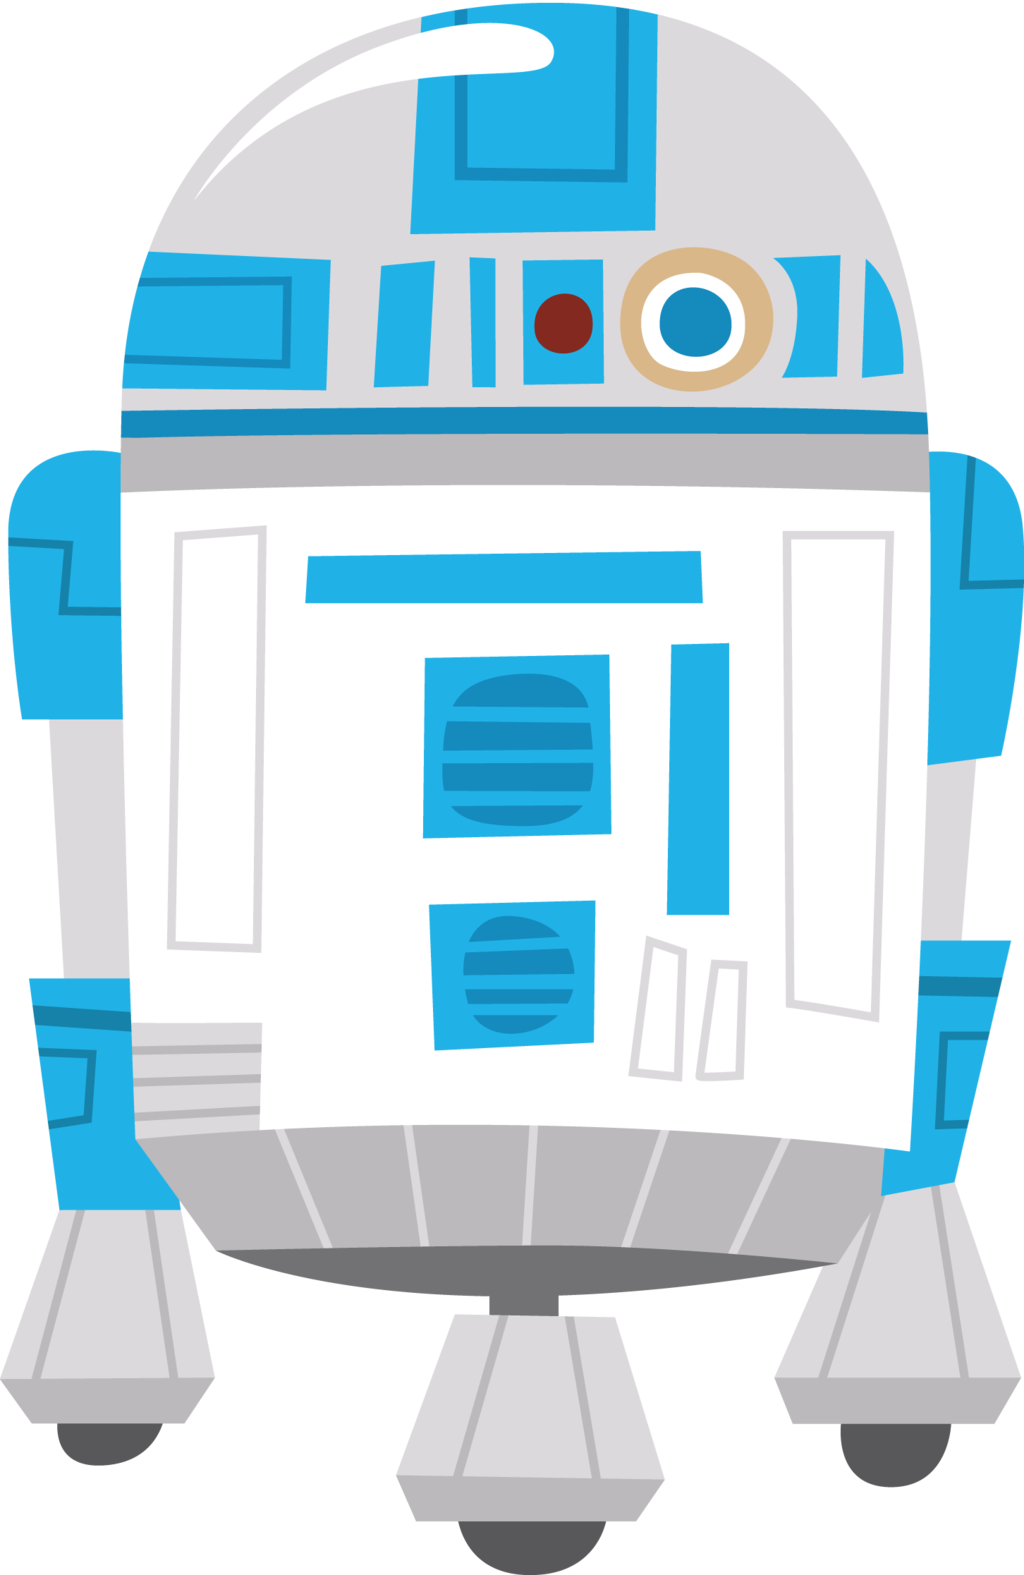 Star wars baby clipart clip free r2d2 by Chrispix326 on DeviantArt clip free